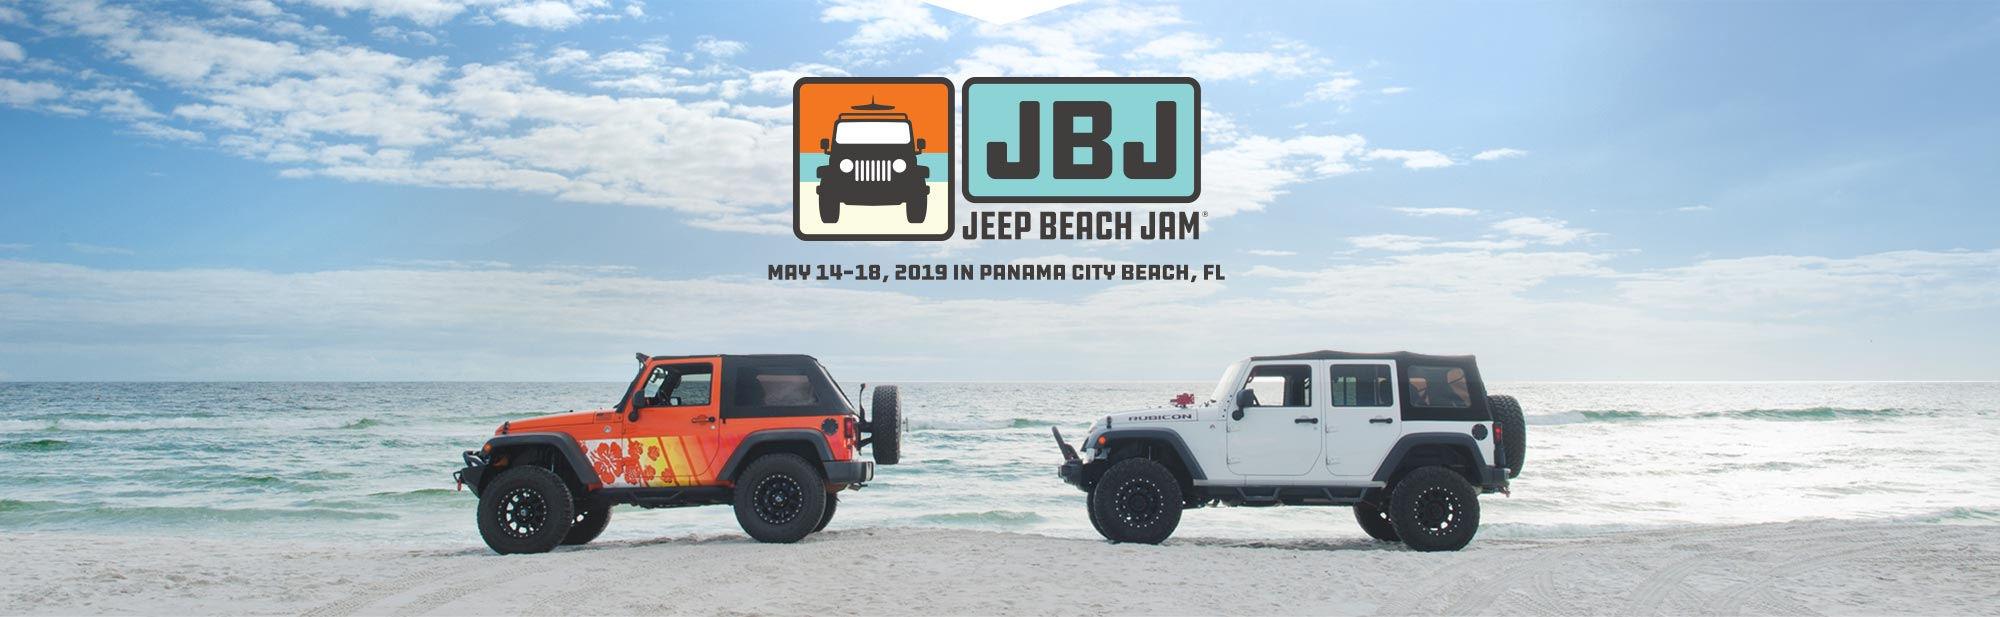 Jeep Beach Jam in Panama City Beach, FL